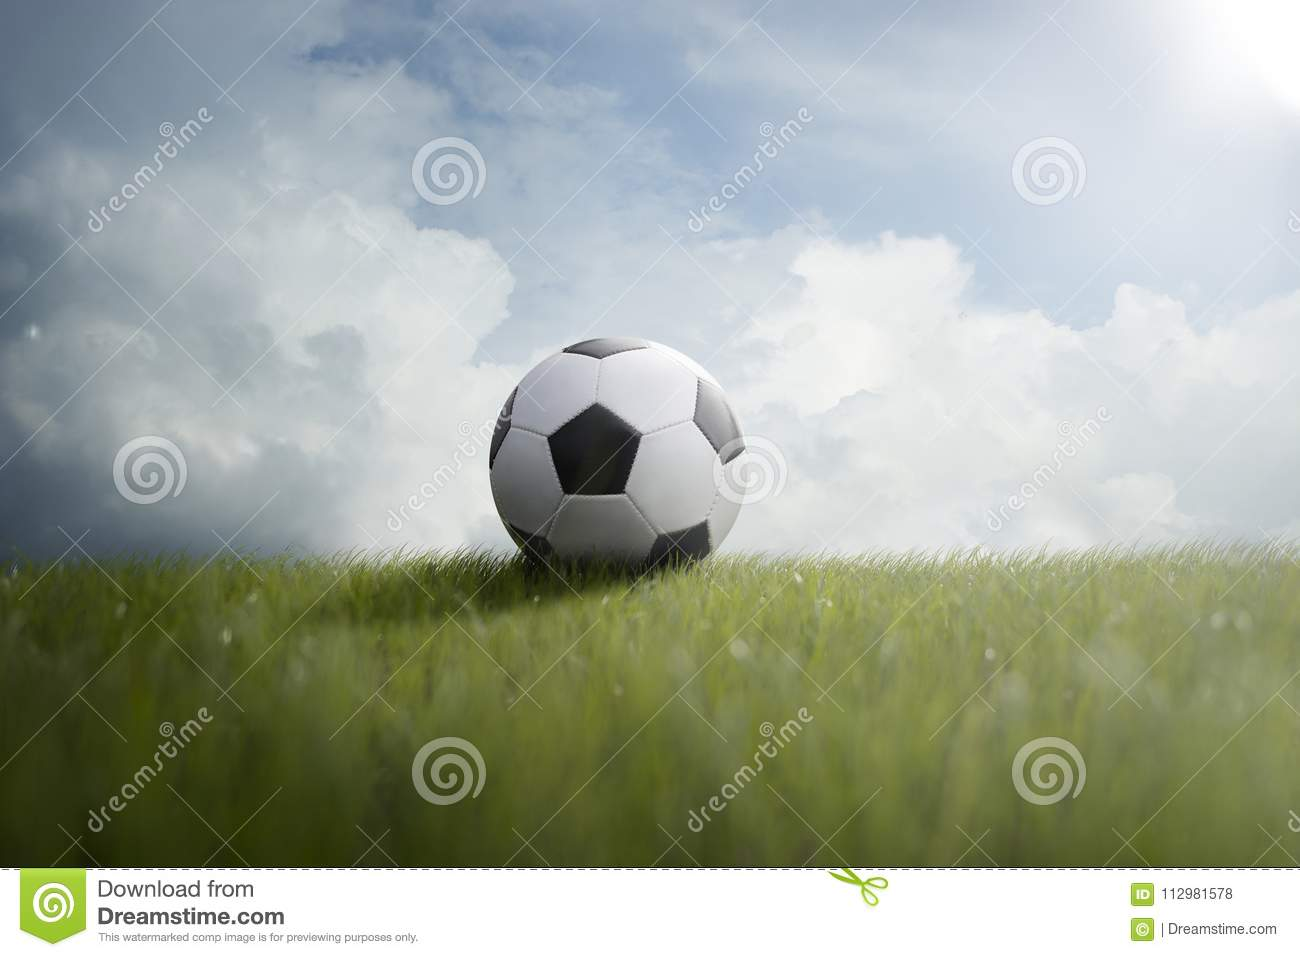 Soccer ball on the lawn